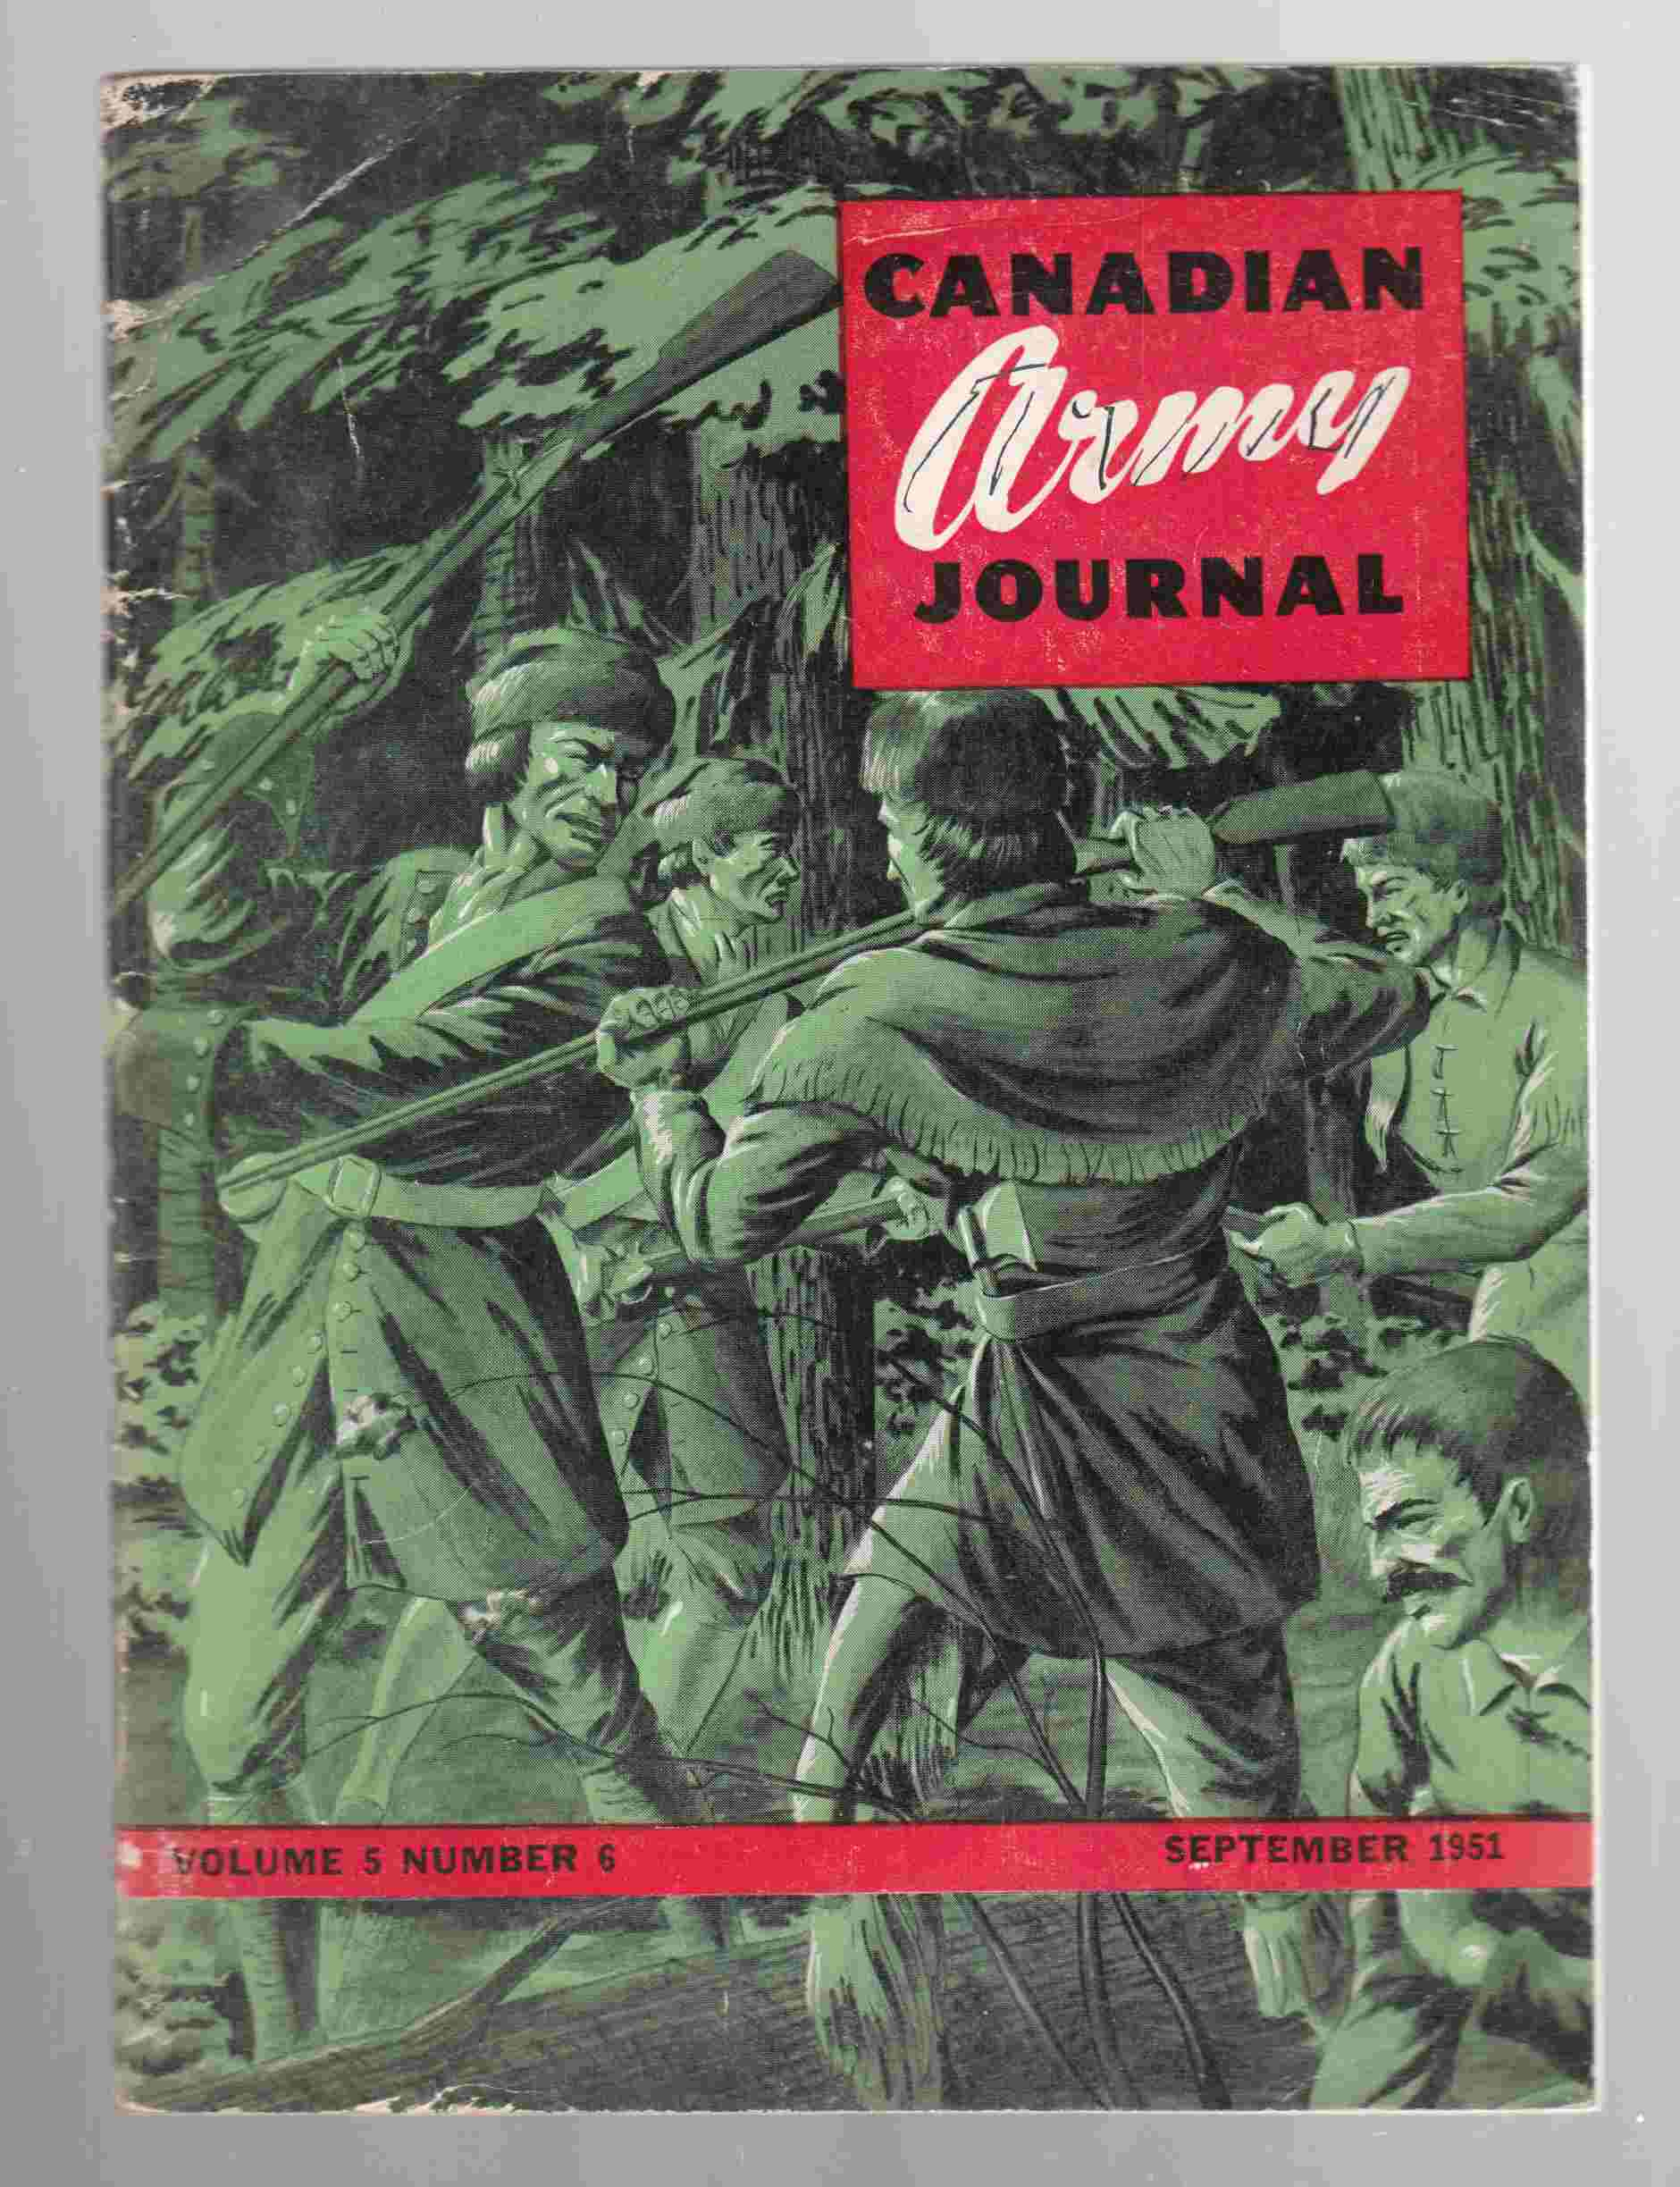 Image for Canadian Army Journal Volume 5 Number 6 September 1951